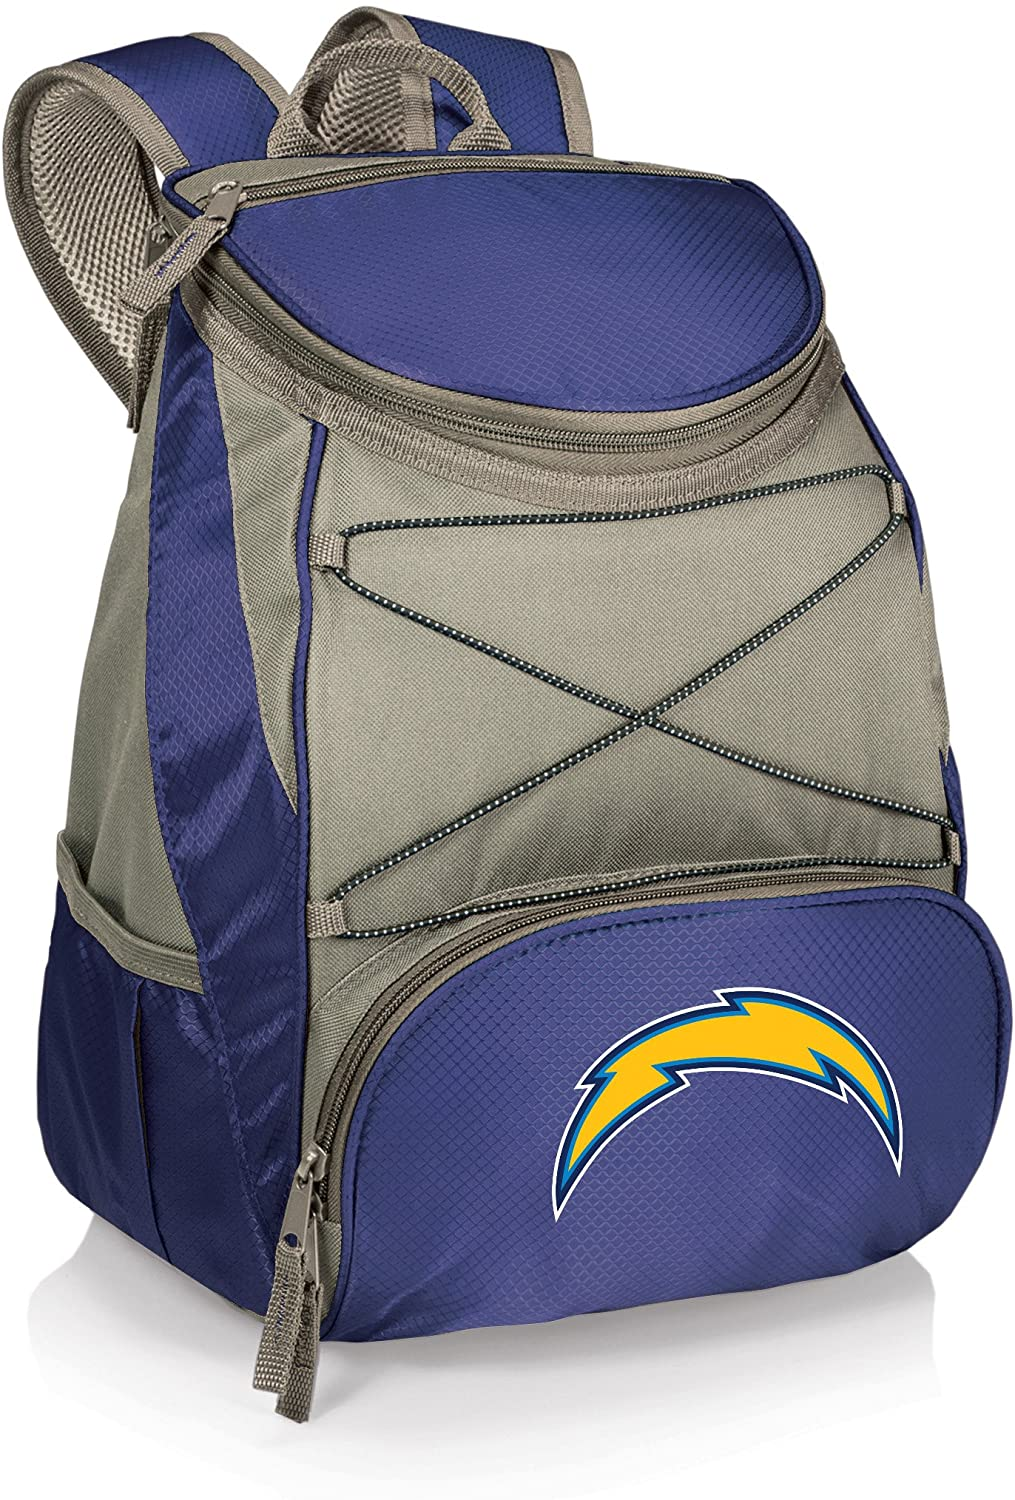 NFL Los Angeles Chargers PTX Insulated Backpack Cooler, Navy